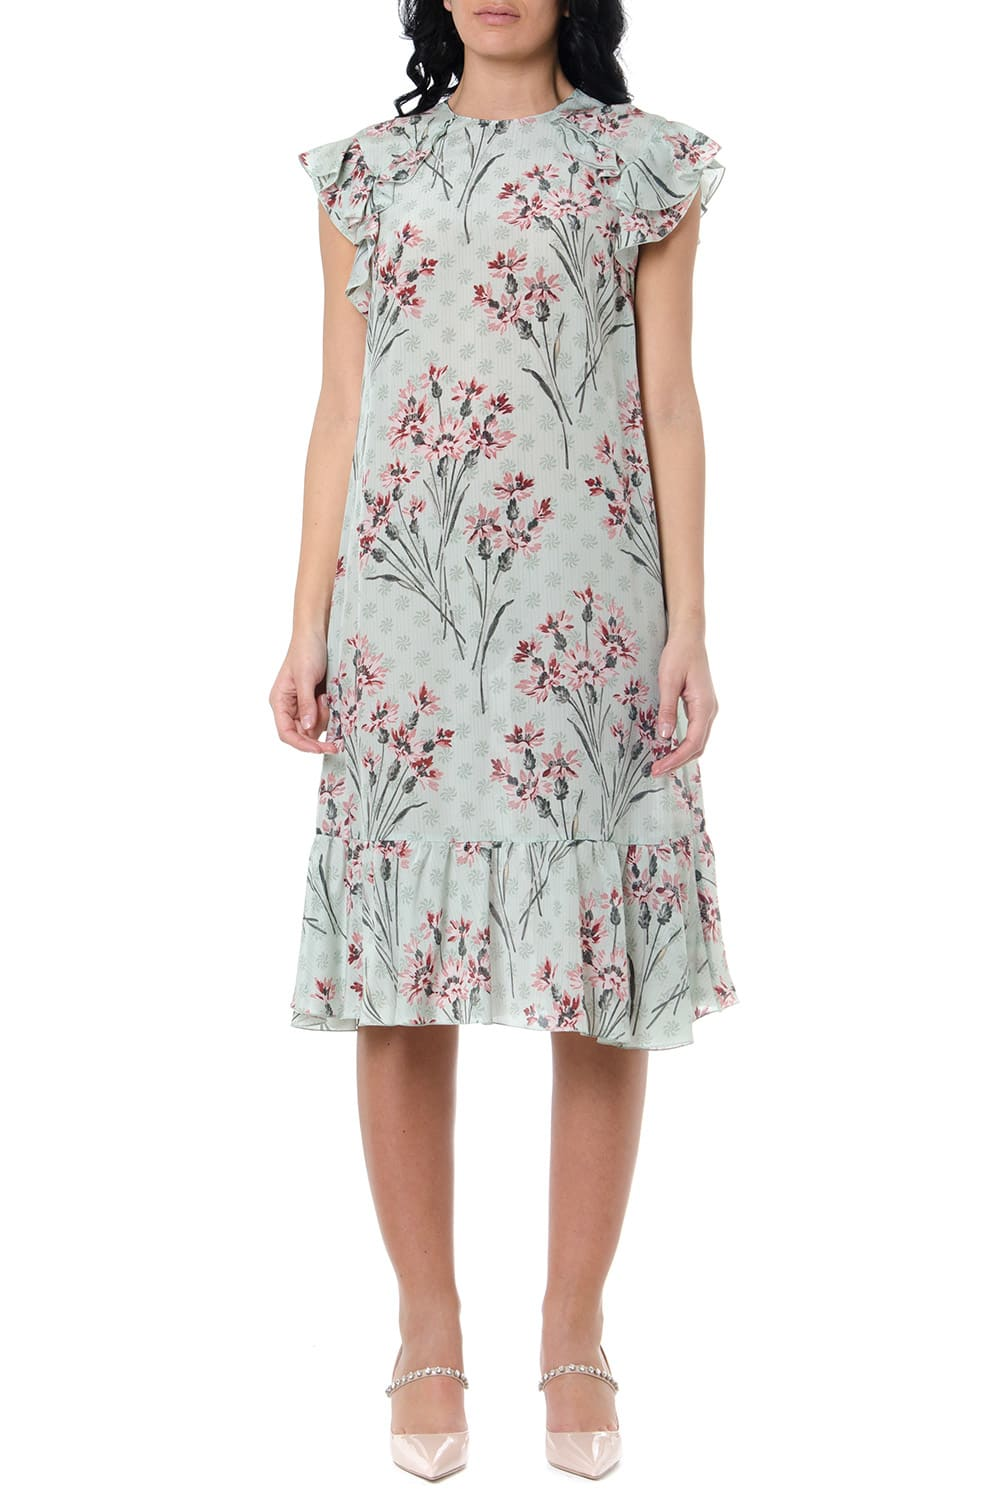 Buy RED Valentino Crepe De Chine Multicolor Floral Print Dress online, shop RED Valentino with free shipping